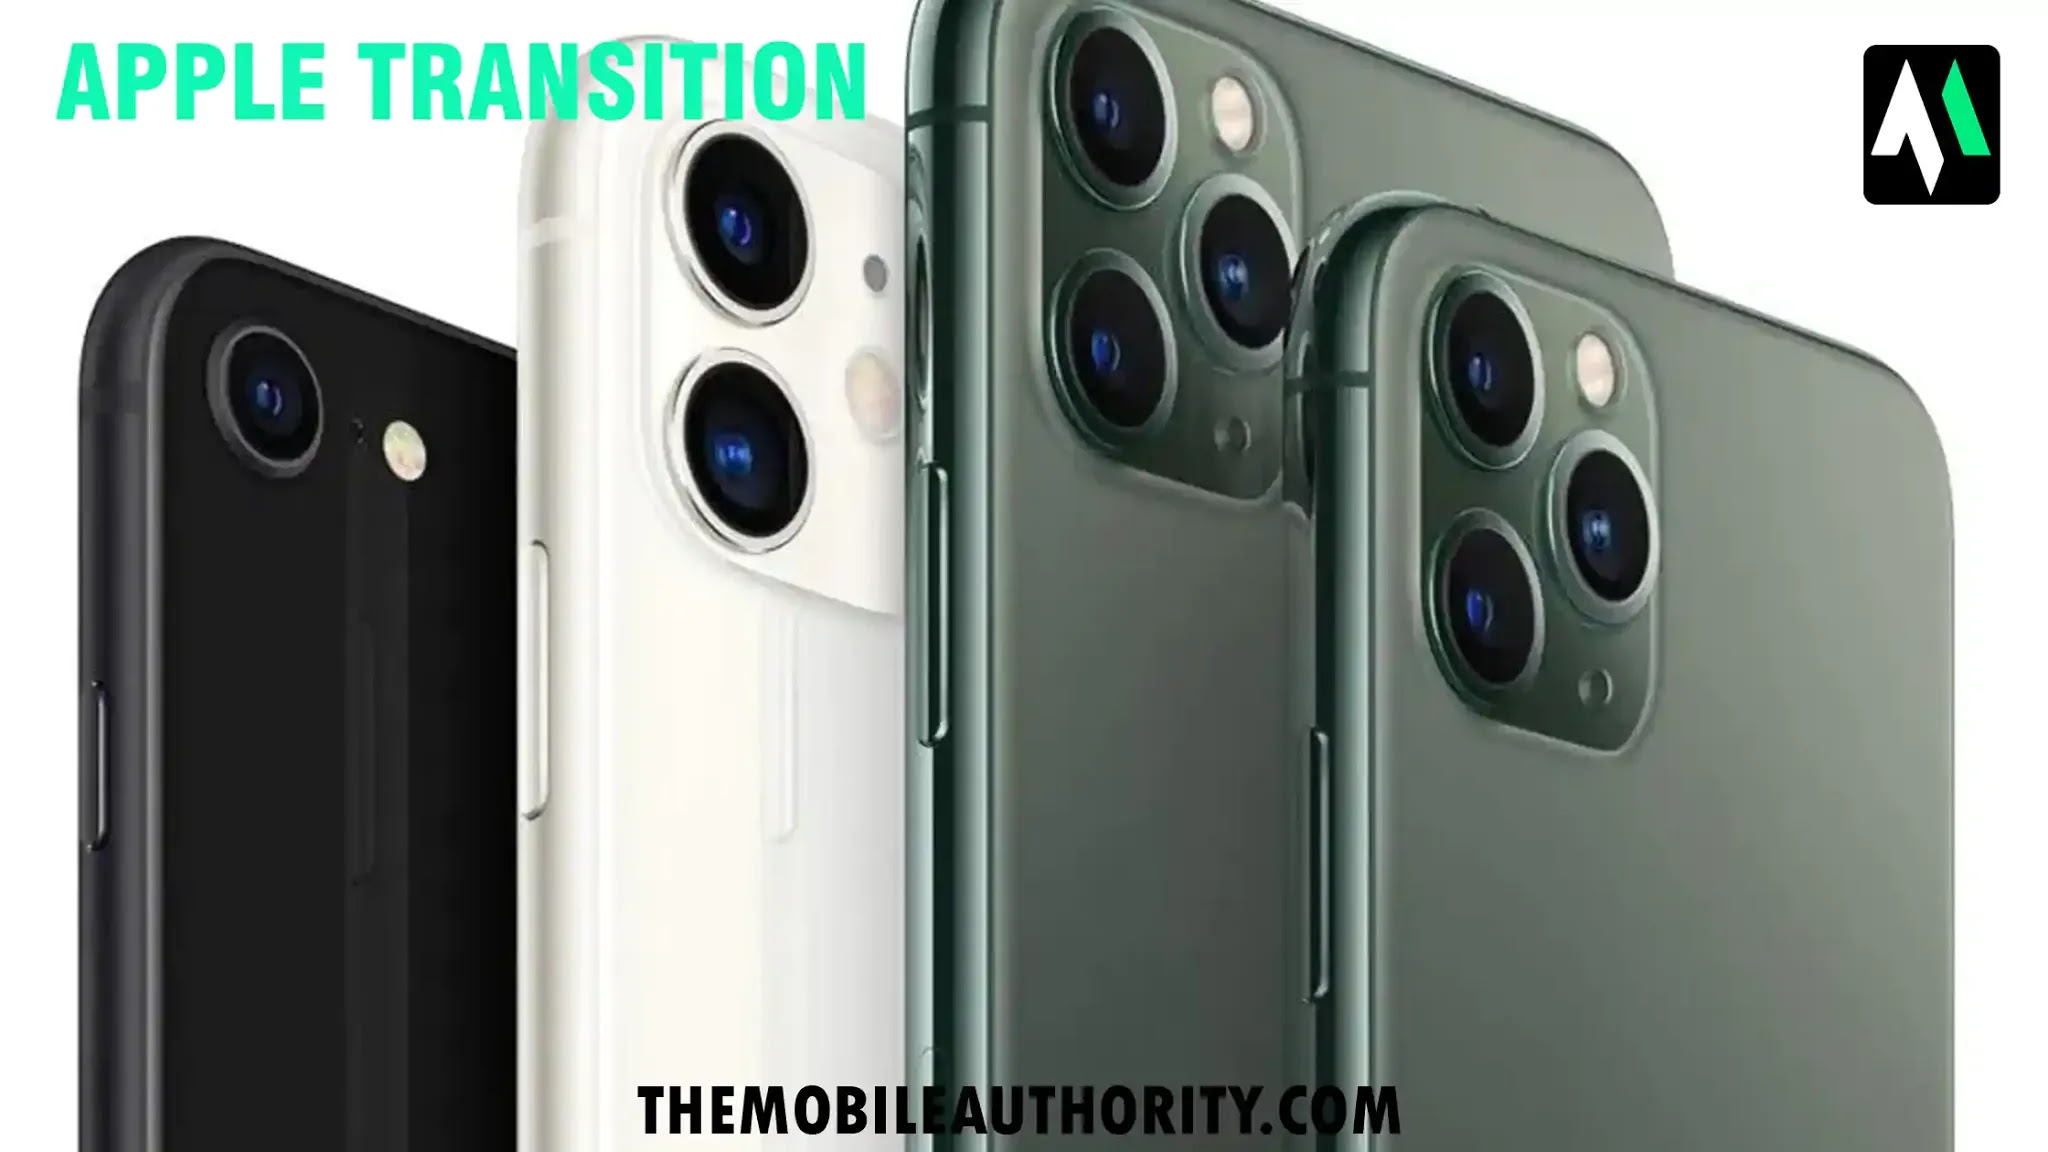 Apple's transition away from Qualcomm modems, according to report